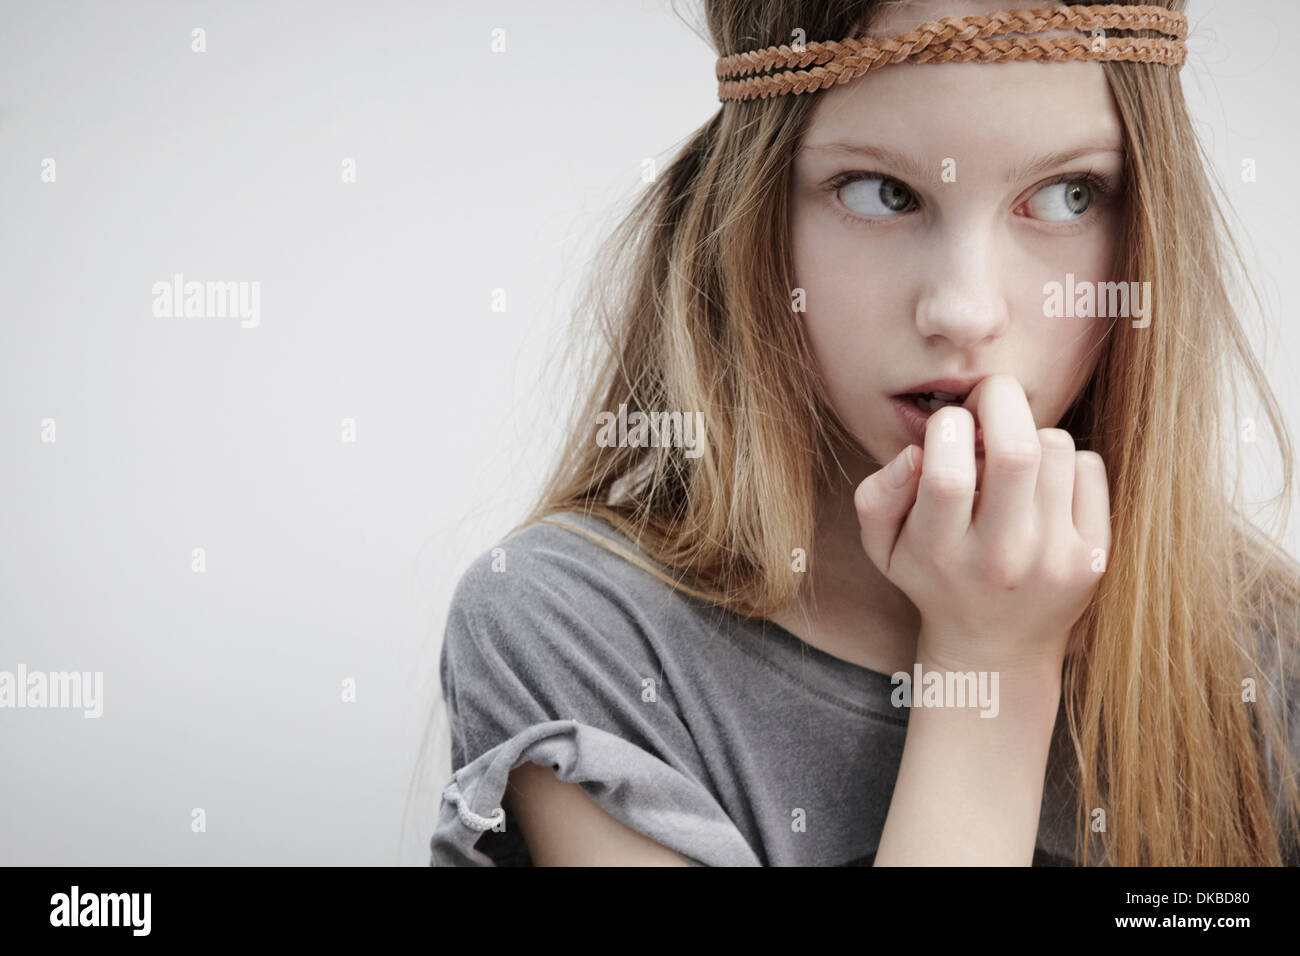 Portrait of girl wearing leather braid around head, holding feather, finger in mouth - Stock Image